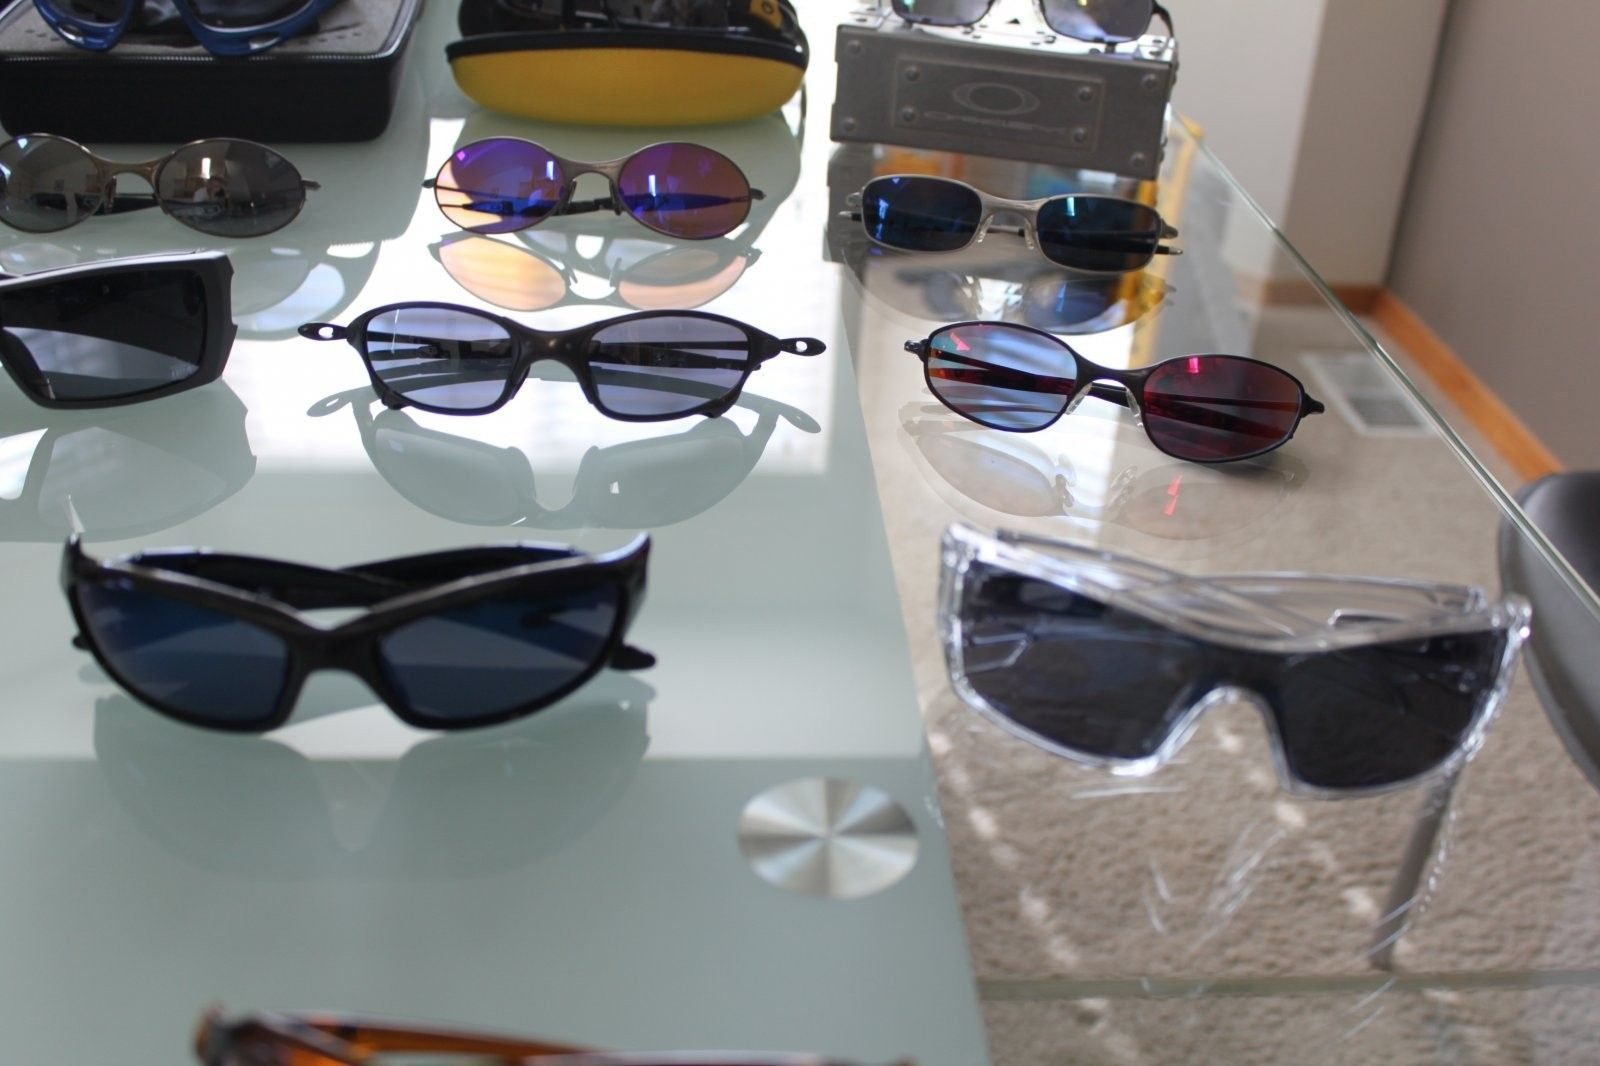 A Collection Built Over 13 Years - IMG_5578.JPG